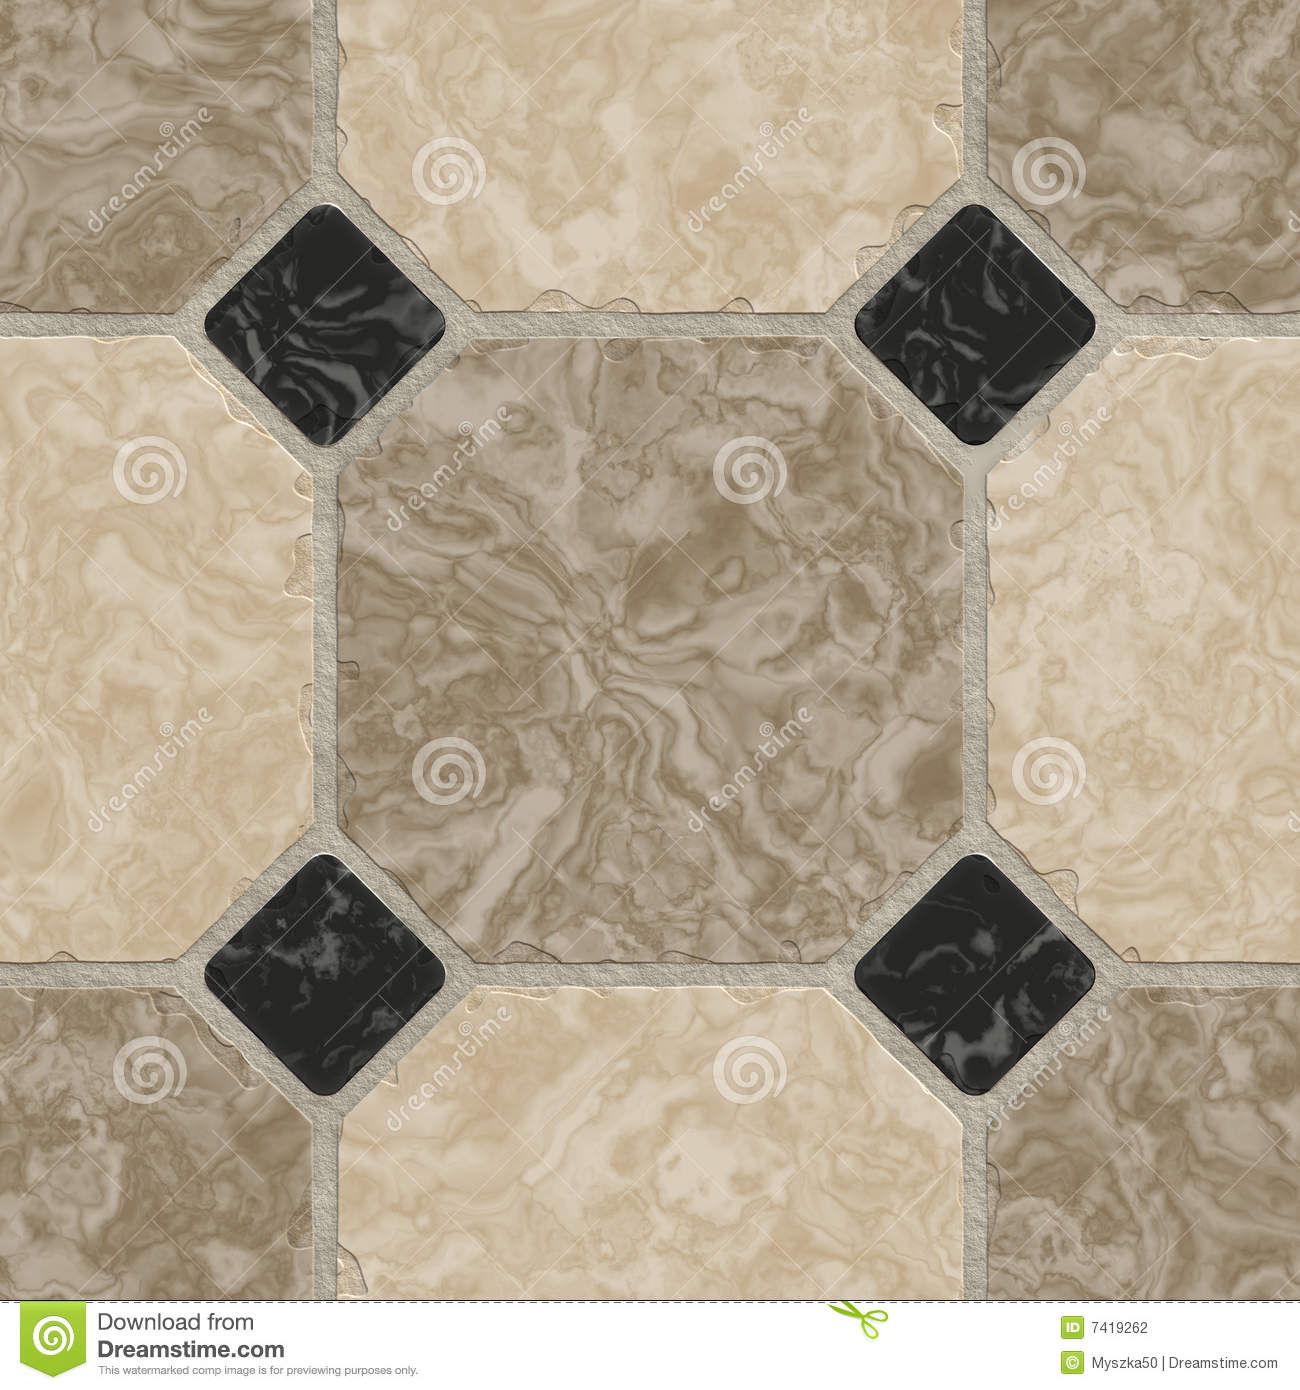 Marble Tiles Background Stock Photography Image 7419262